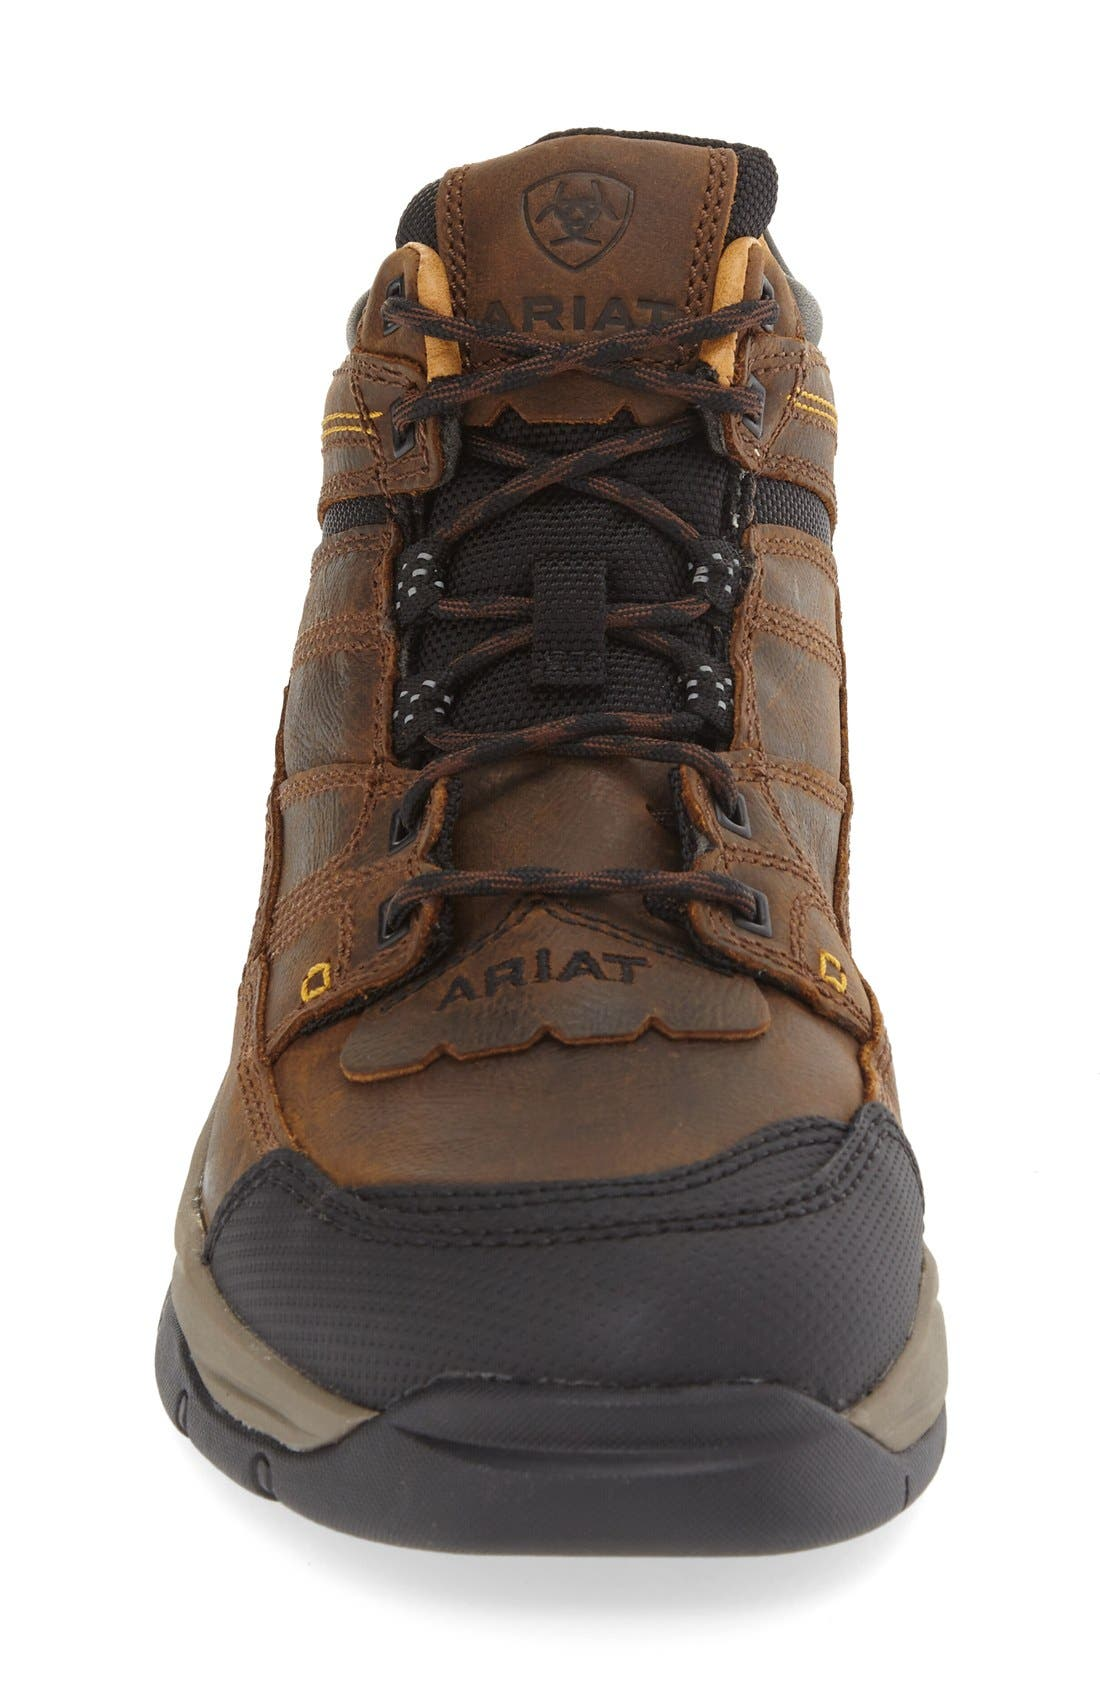 Alternate Image 3  - Ariat 'Terrain Pro' Waterproof Hiking Boot (Men)